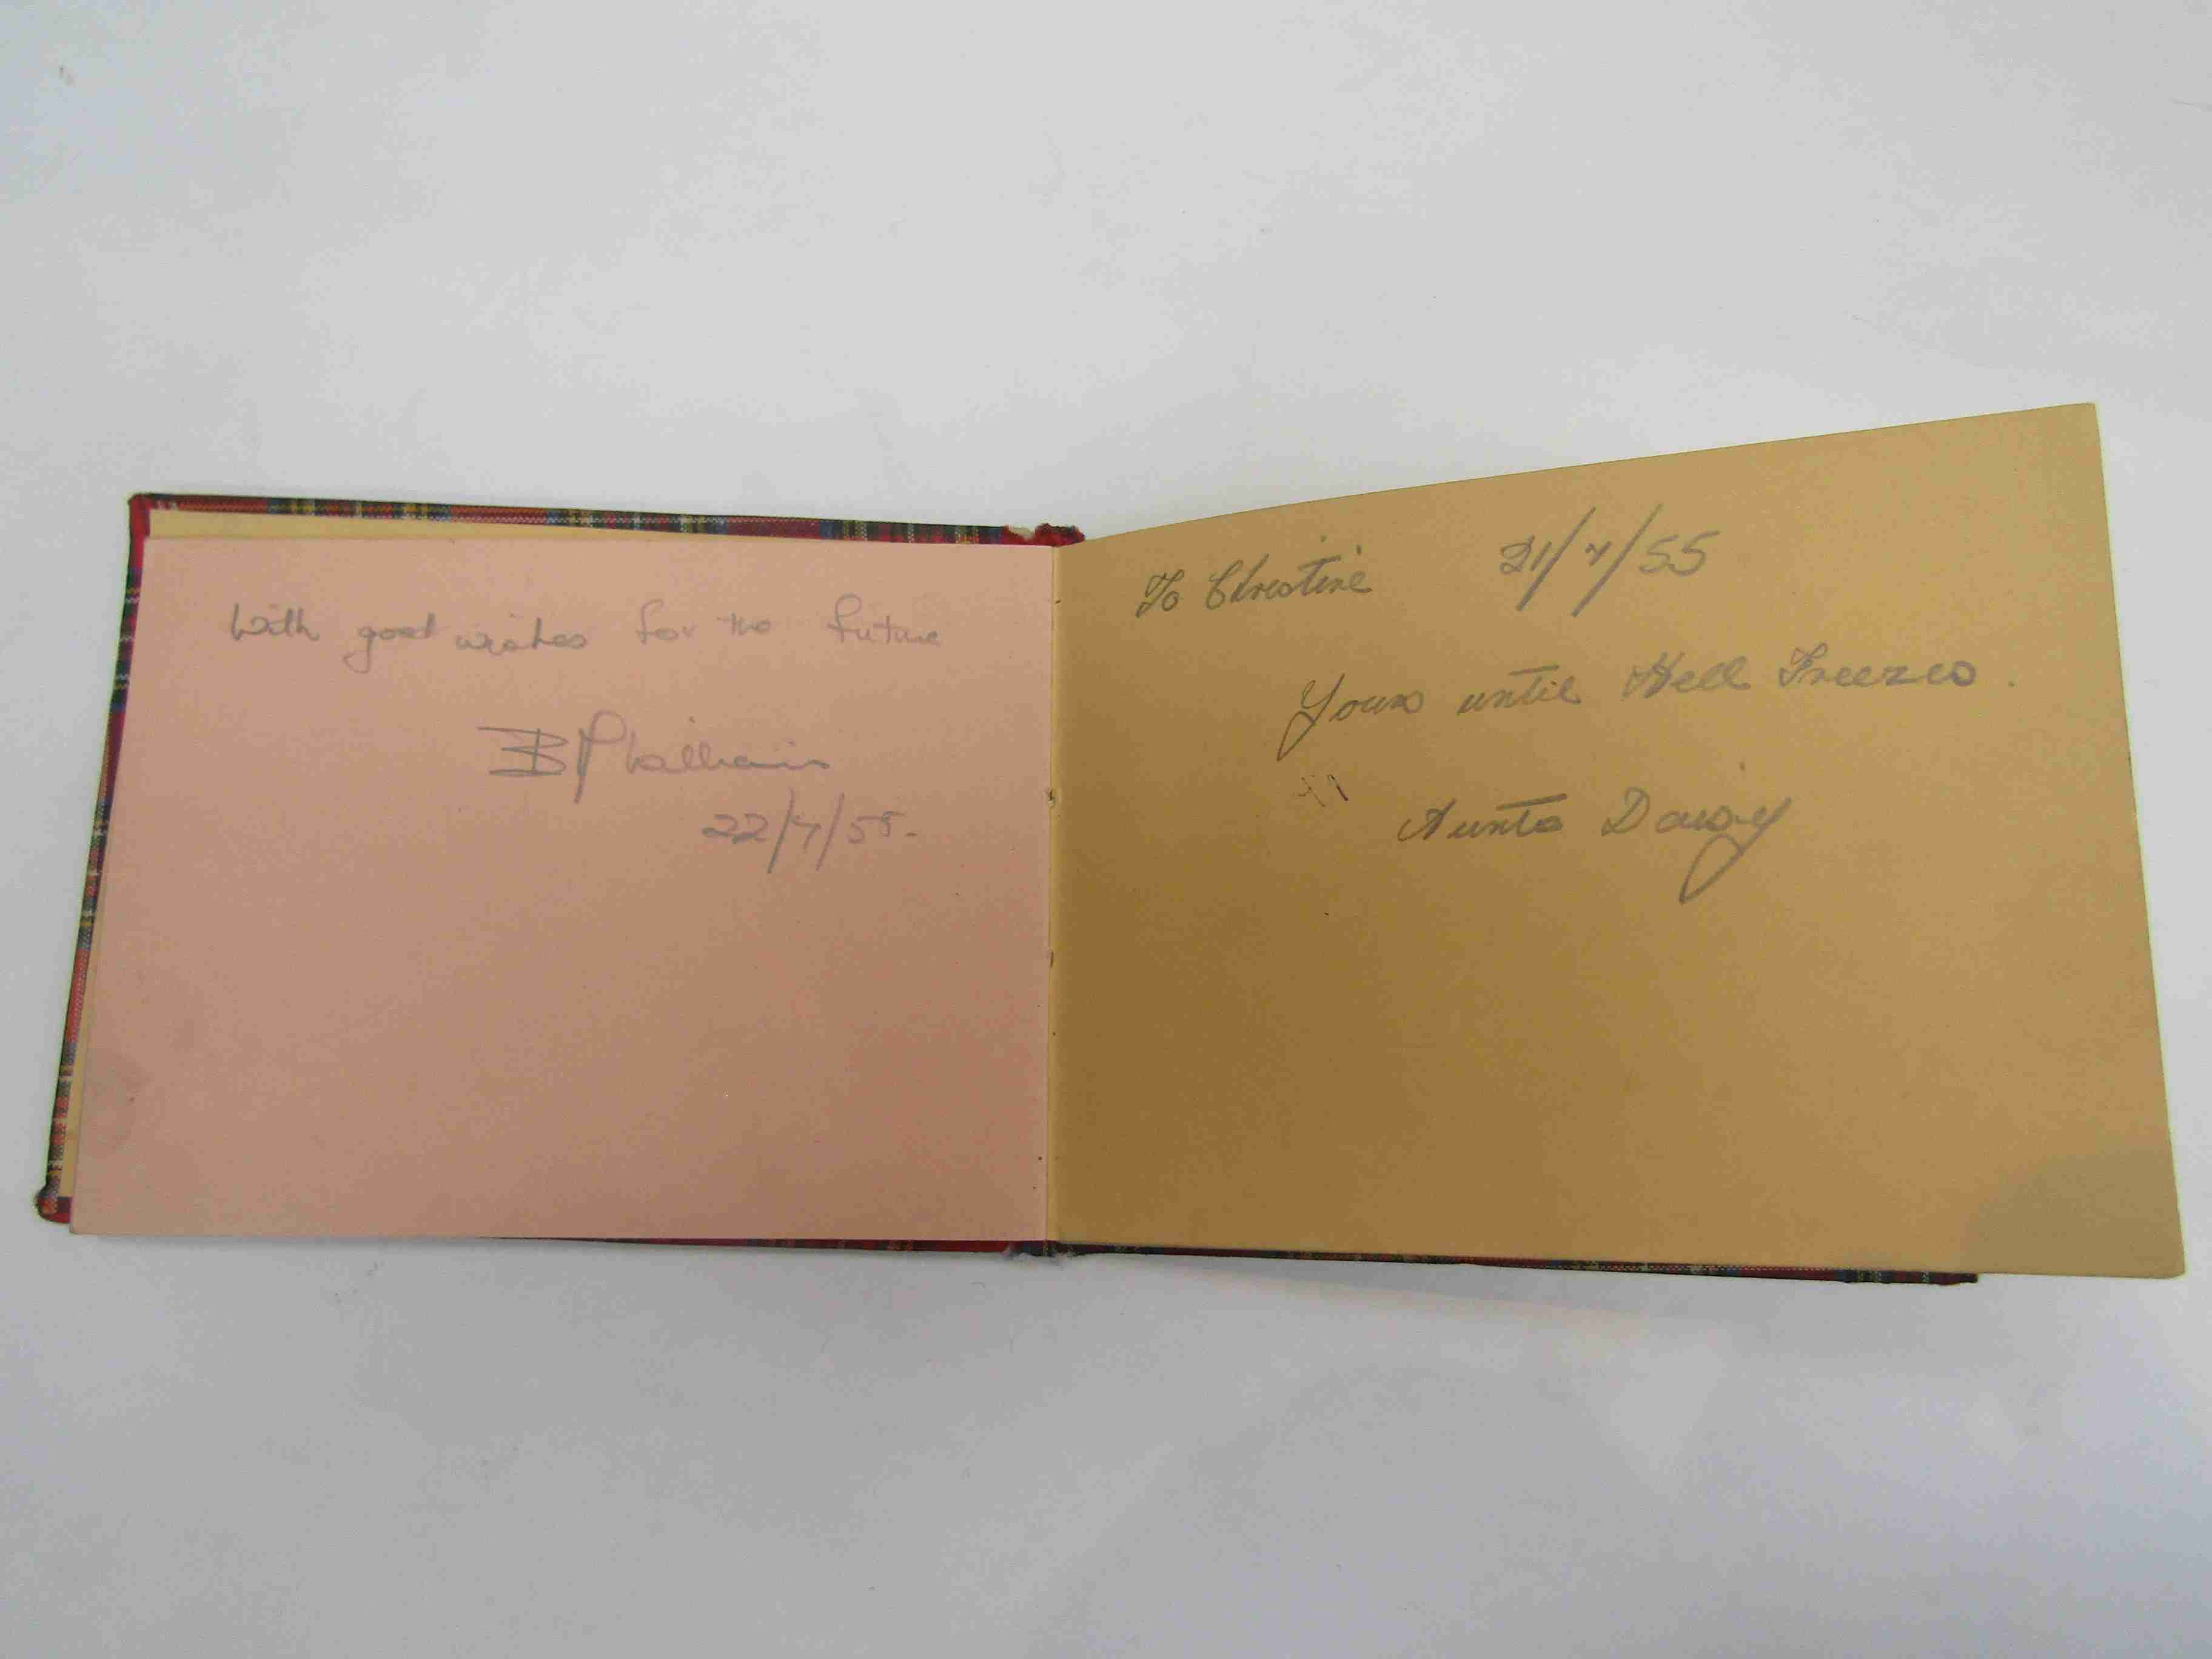 Two 1950s/60s autograph books containing autographs by Benny Hill, Honor Blackman, Barbara Shelley, - Image 13 of 34